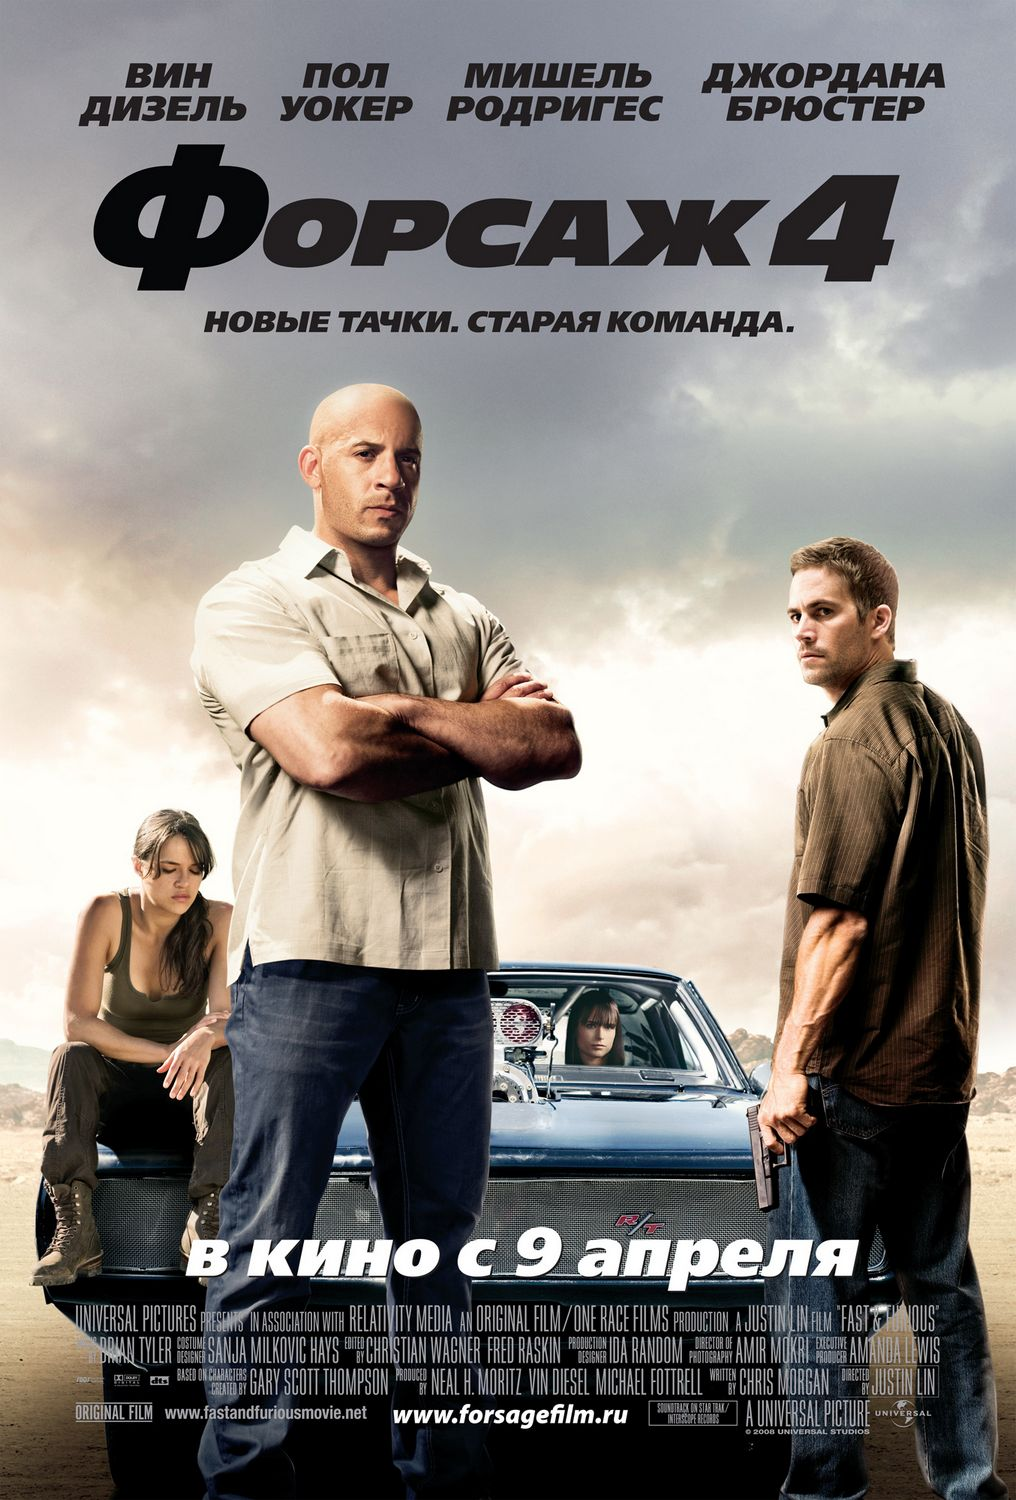 image fast furious 4 poster the fast and the furious wiki fandom powered by wikia. Black Bedroom Furniture Sets. Home Design Ideas